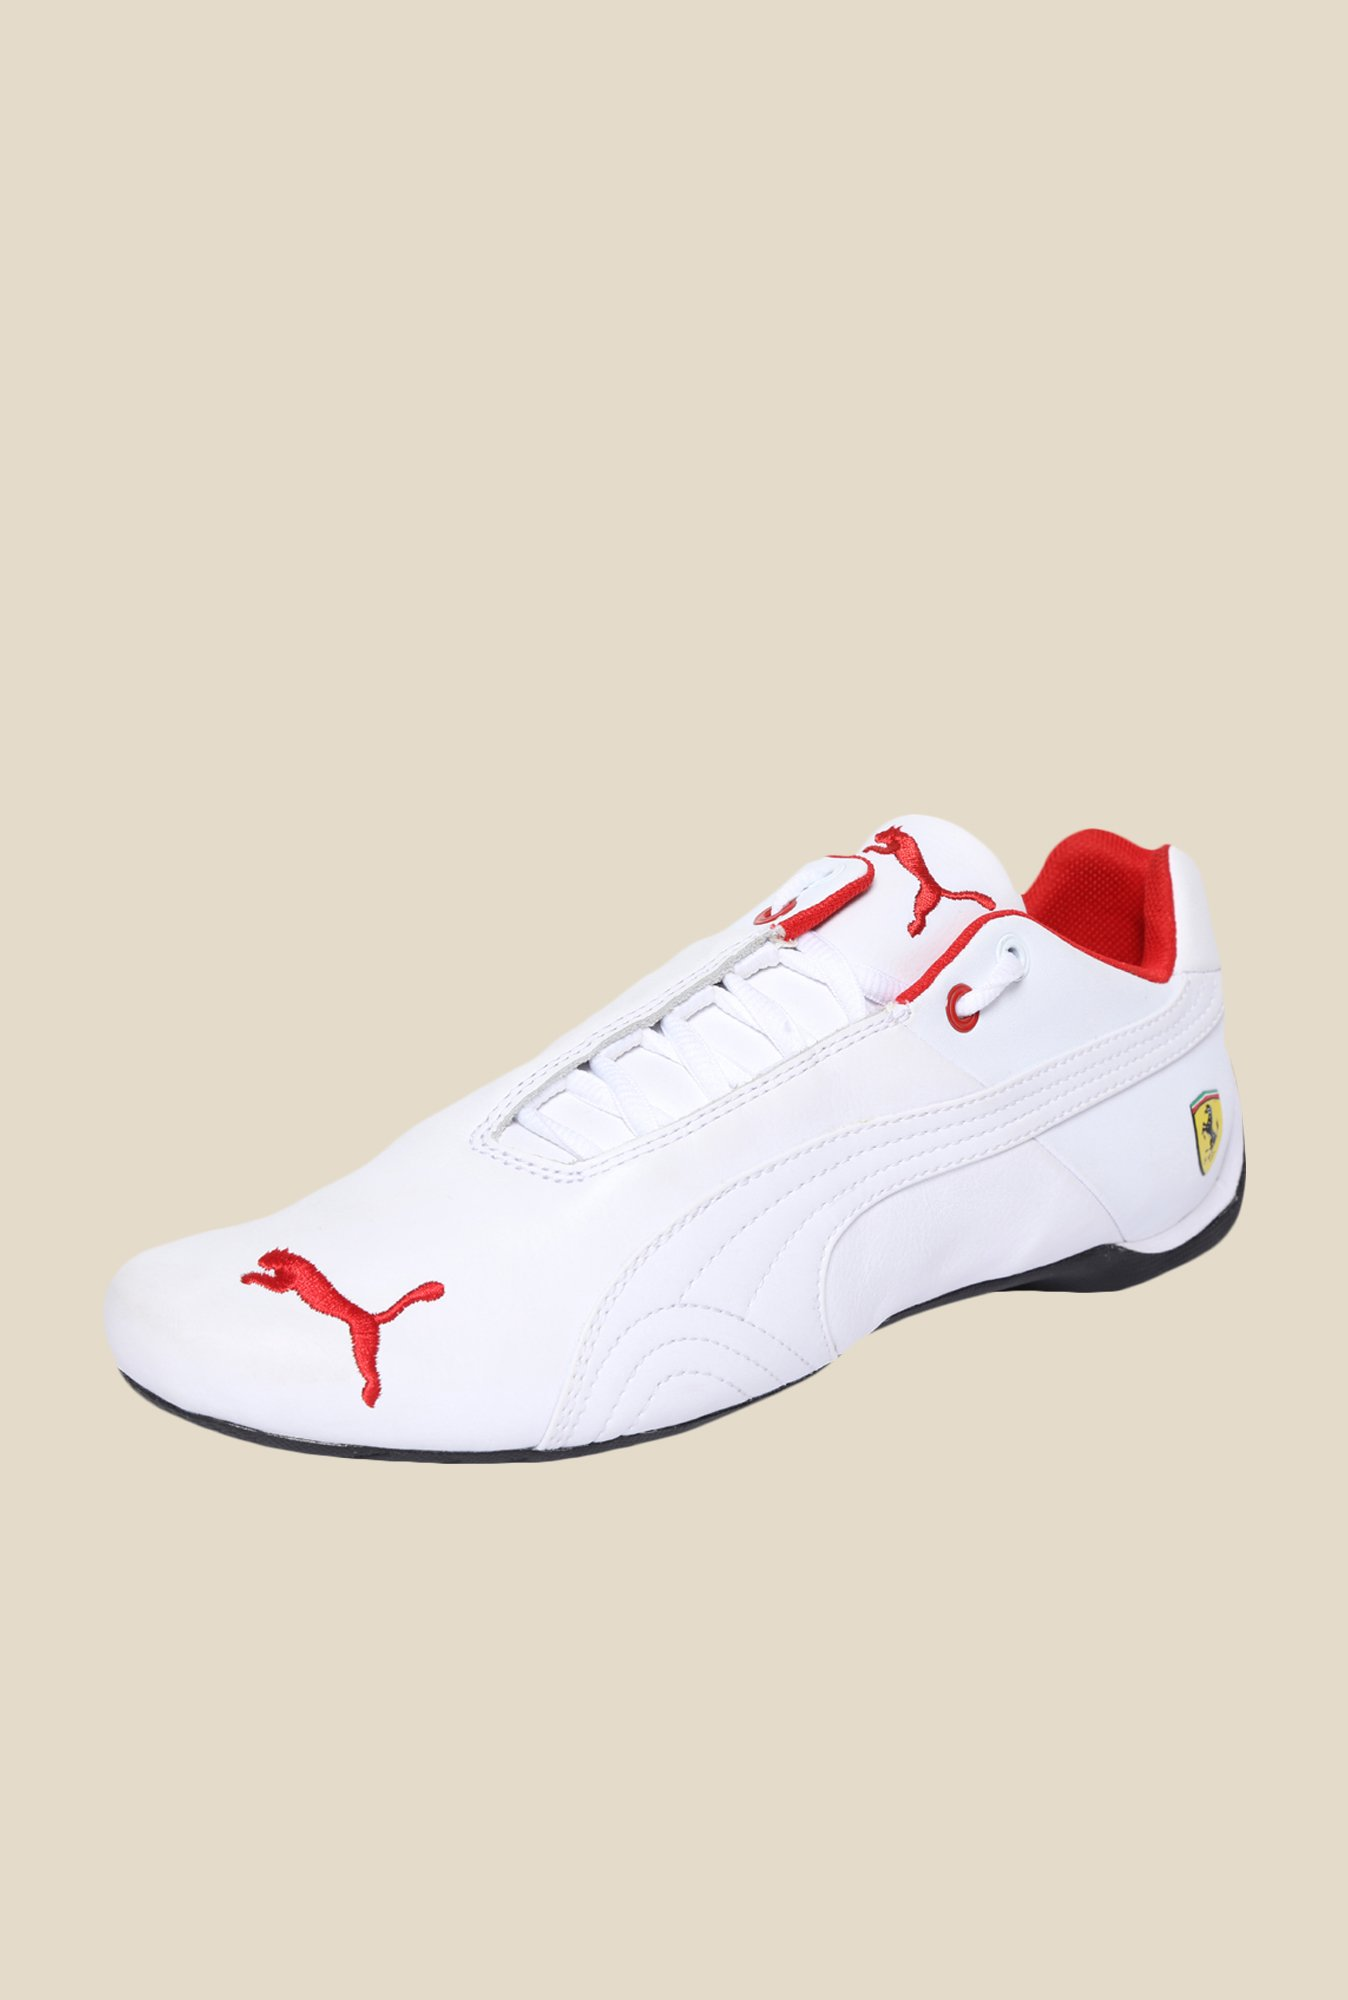 Puma Future CAT SF White & Red Sneakers